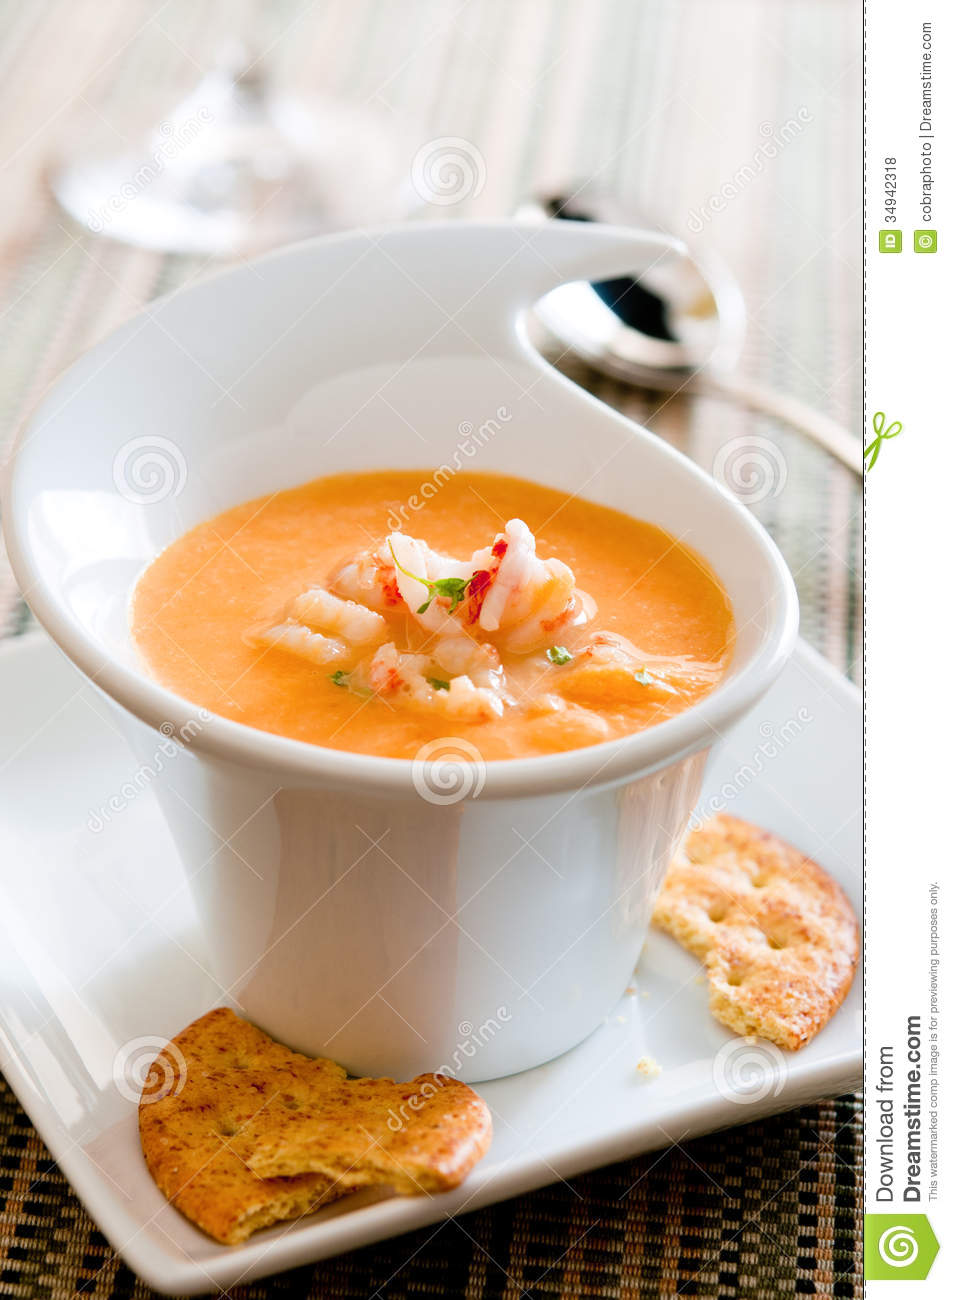 Lobster Bisque stock photo. Image of shrimp, gourmet - 34942318